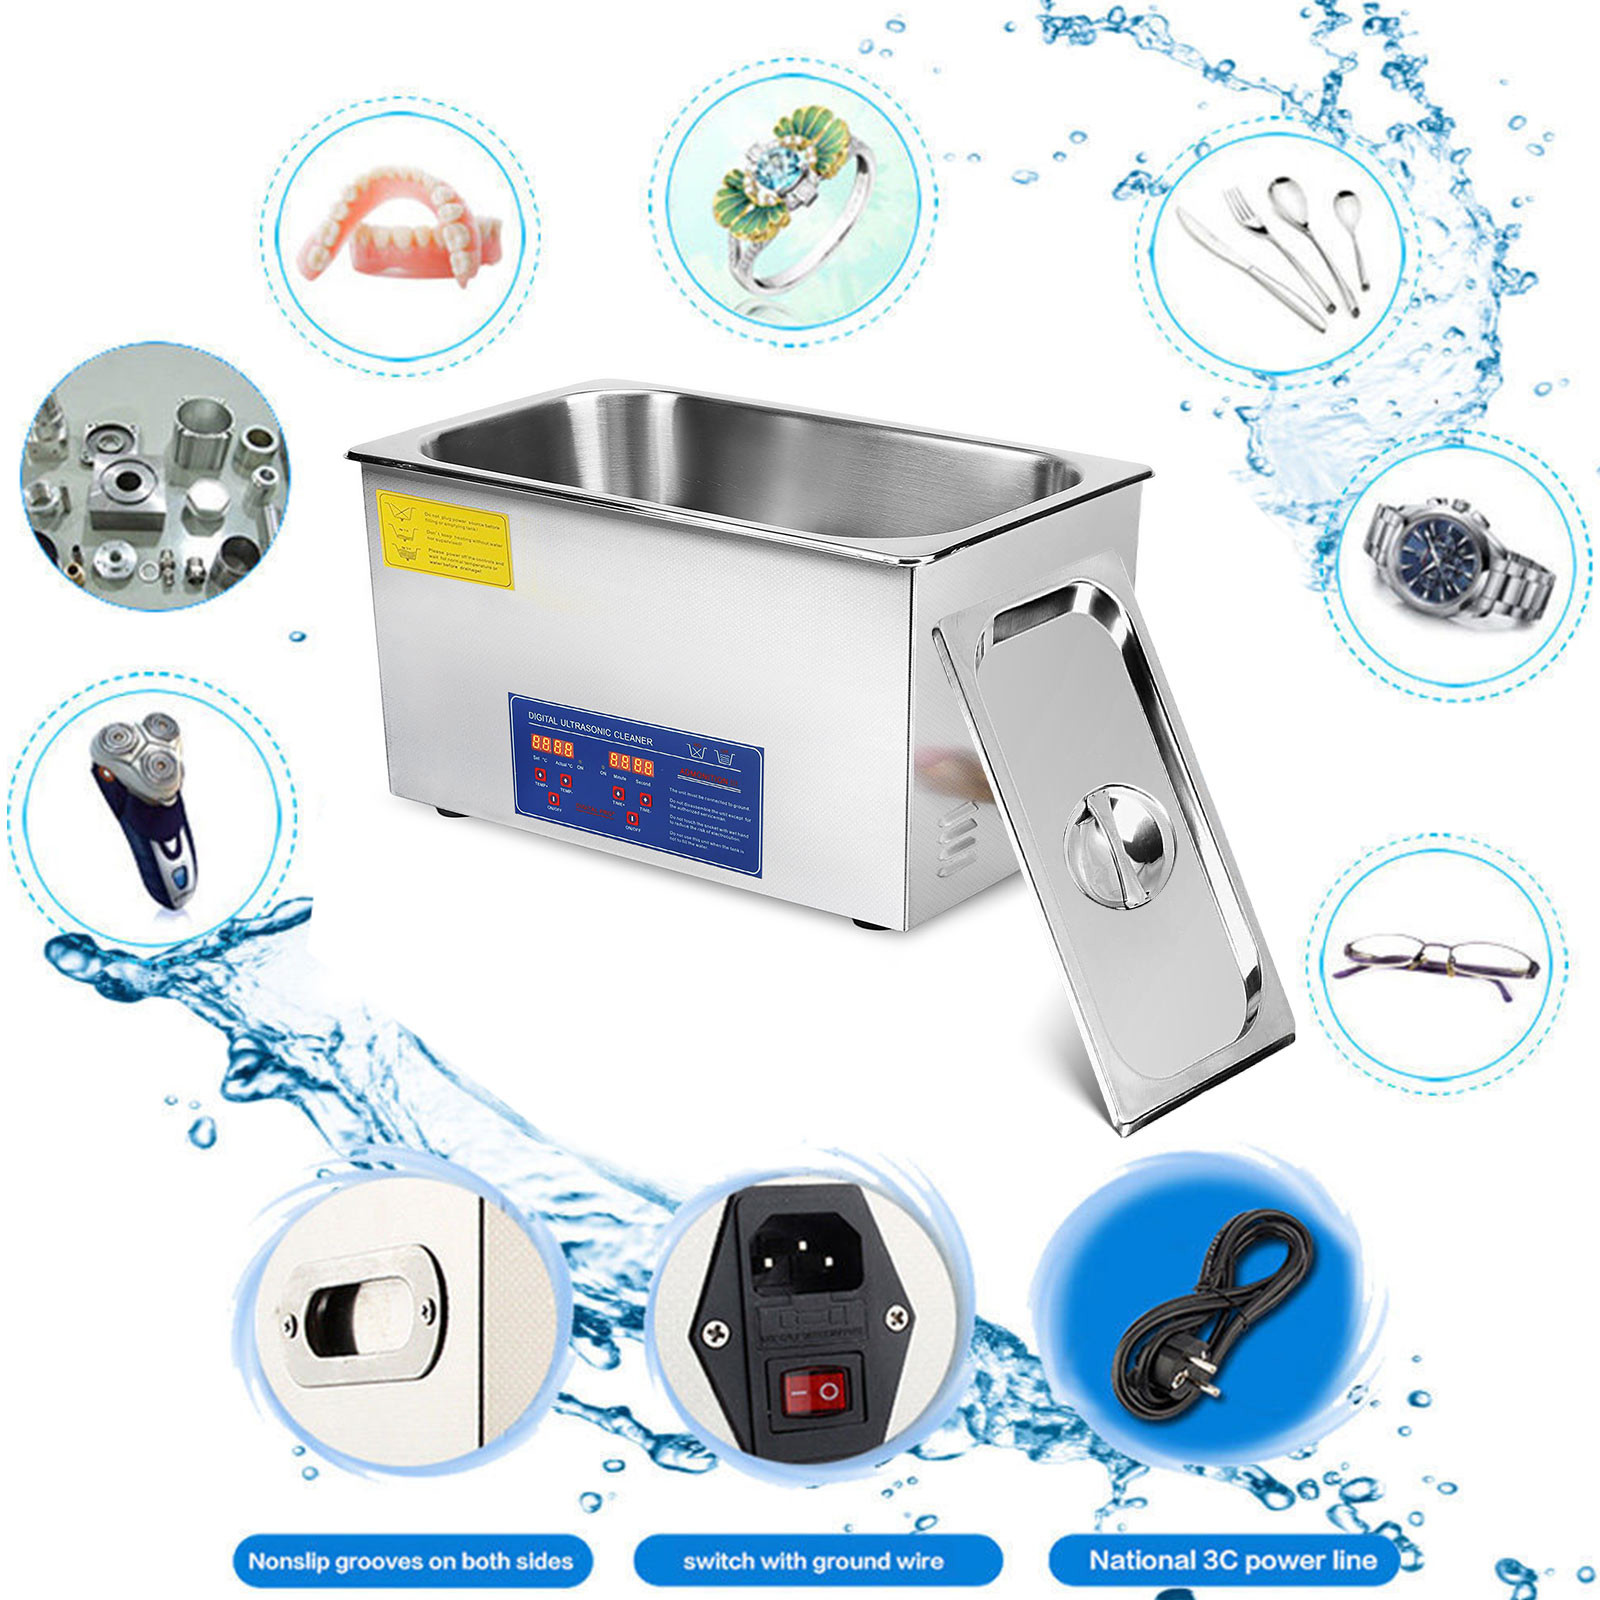 Multi-Ultrasonic-Cleaner-Supplies-Jewelry-1-3-2L-3L-6L-10L-15L-22L-30L thumbnail 106